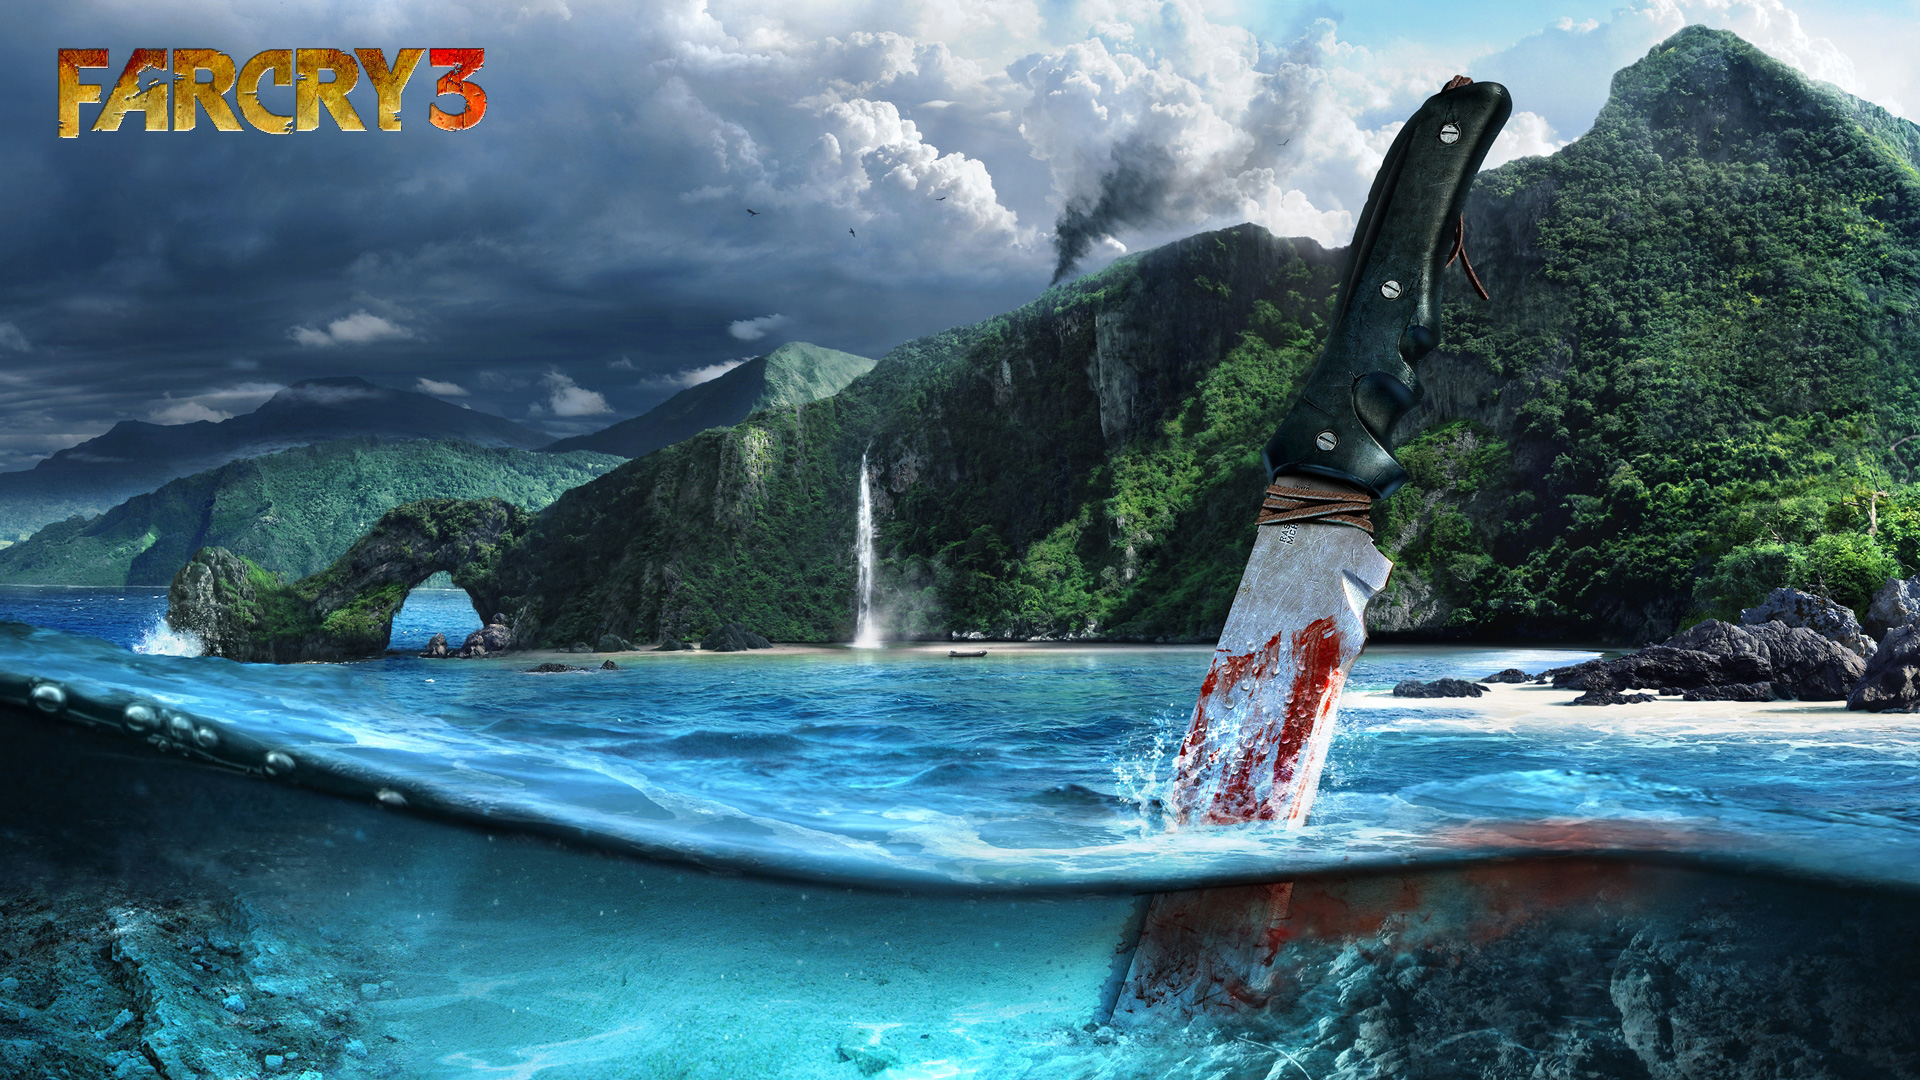 Far Cry 3 Wallpaper in 1920x1080 1920x1080